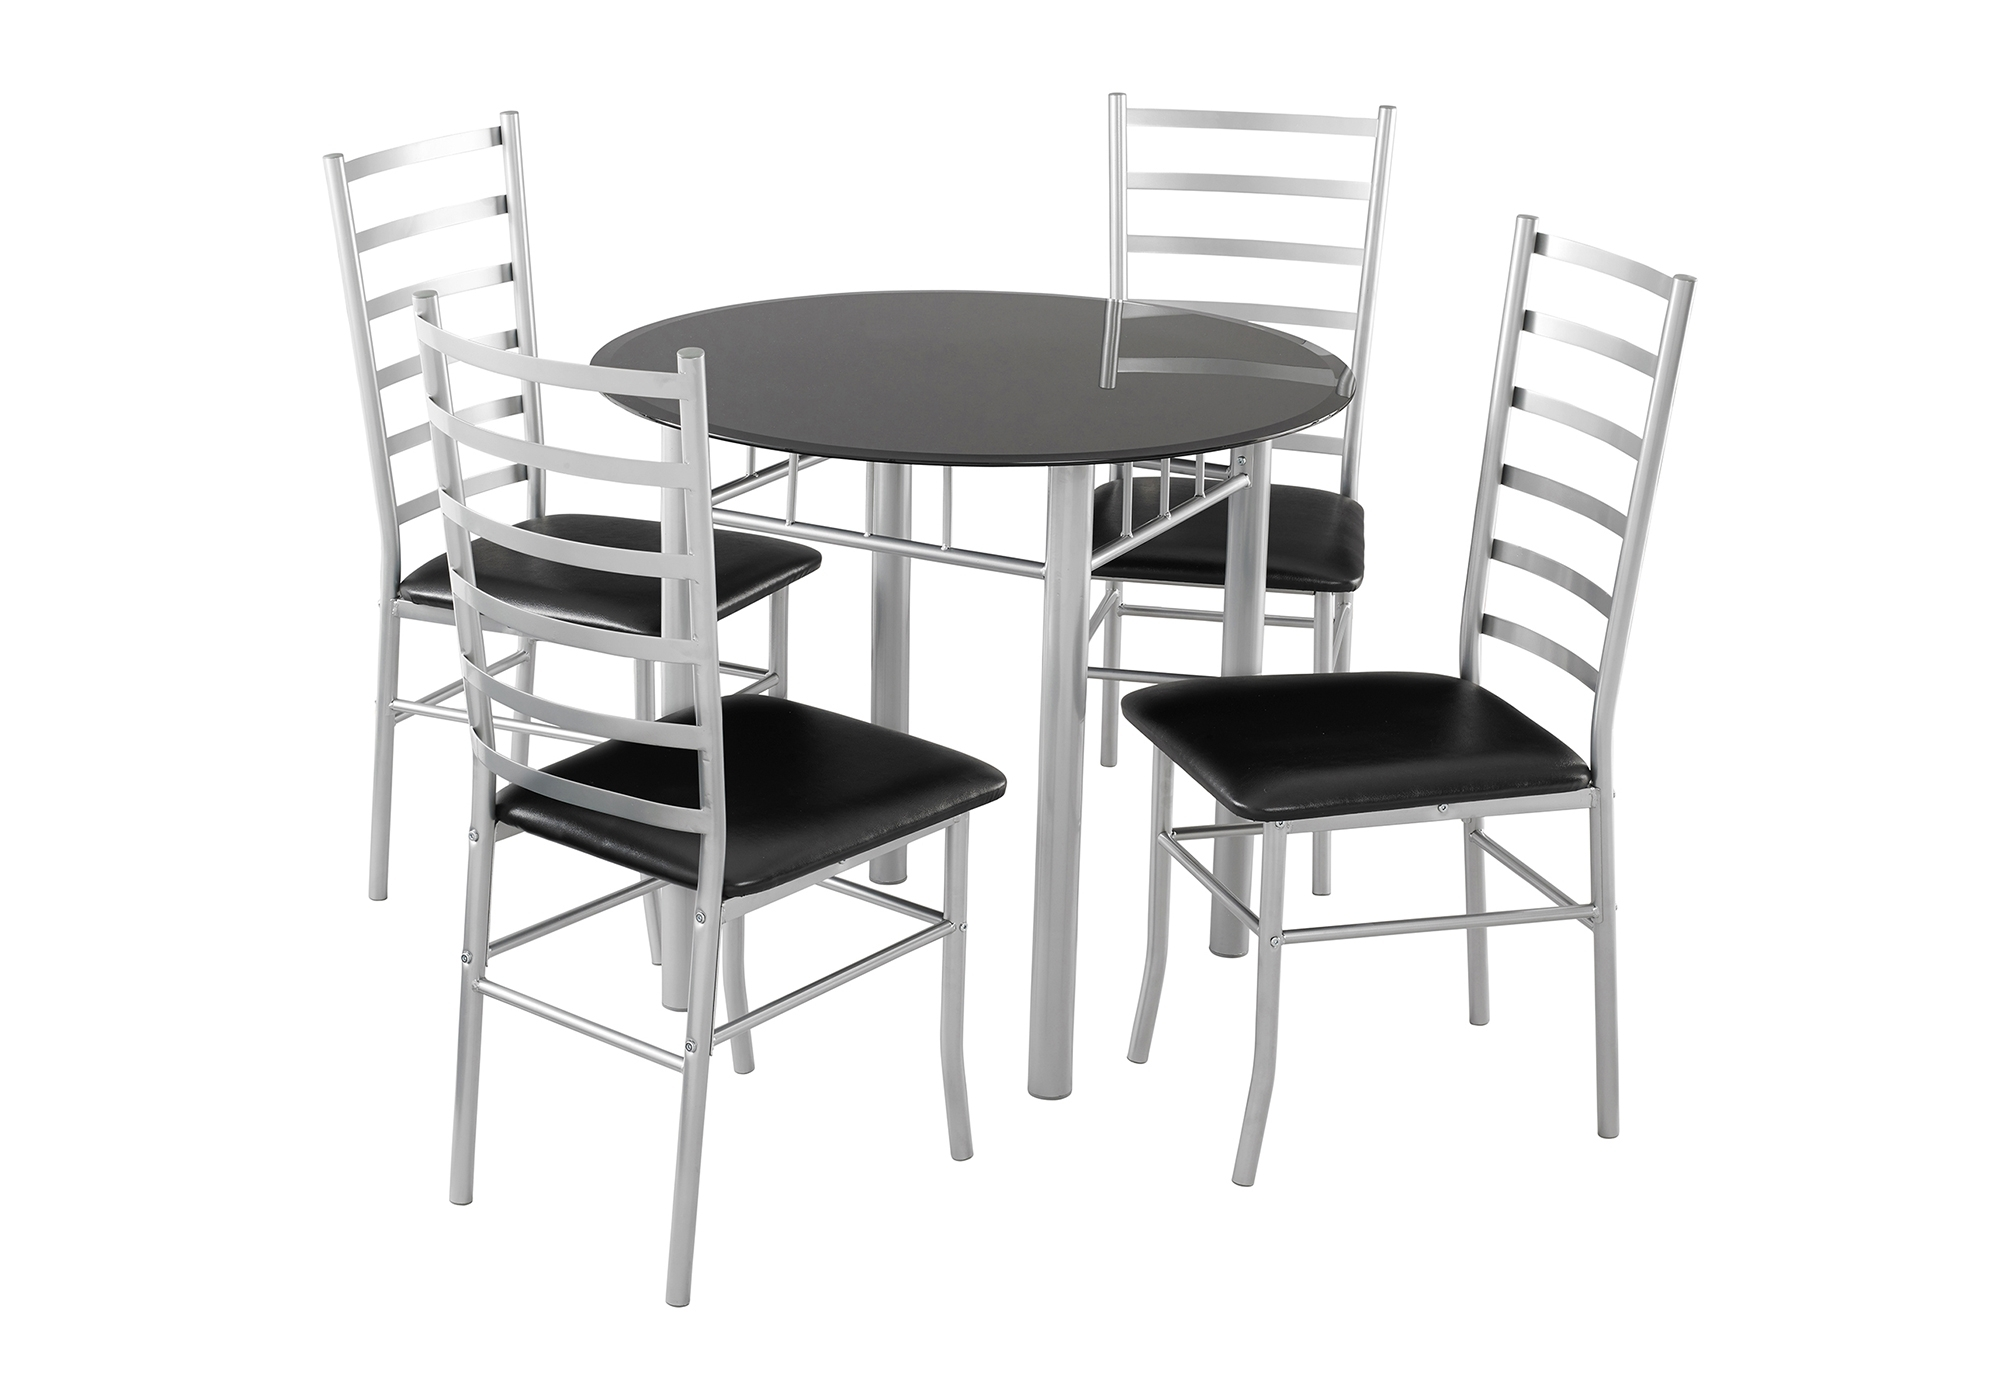 Newest Black Glass Dining Tables And 4 Chairs with Details About Lincoln Dining Set 4 Seater - Black Glass Dining Table & 4  Chairs - Padded Seats